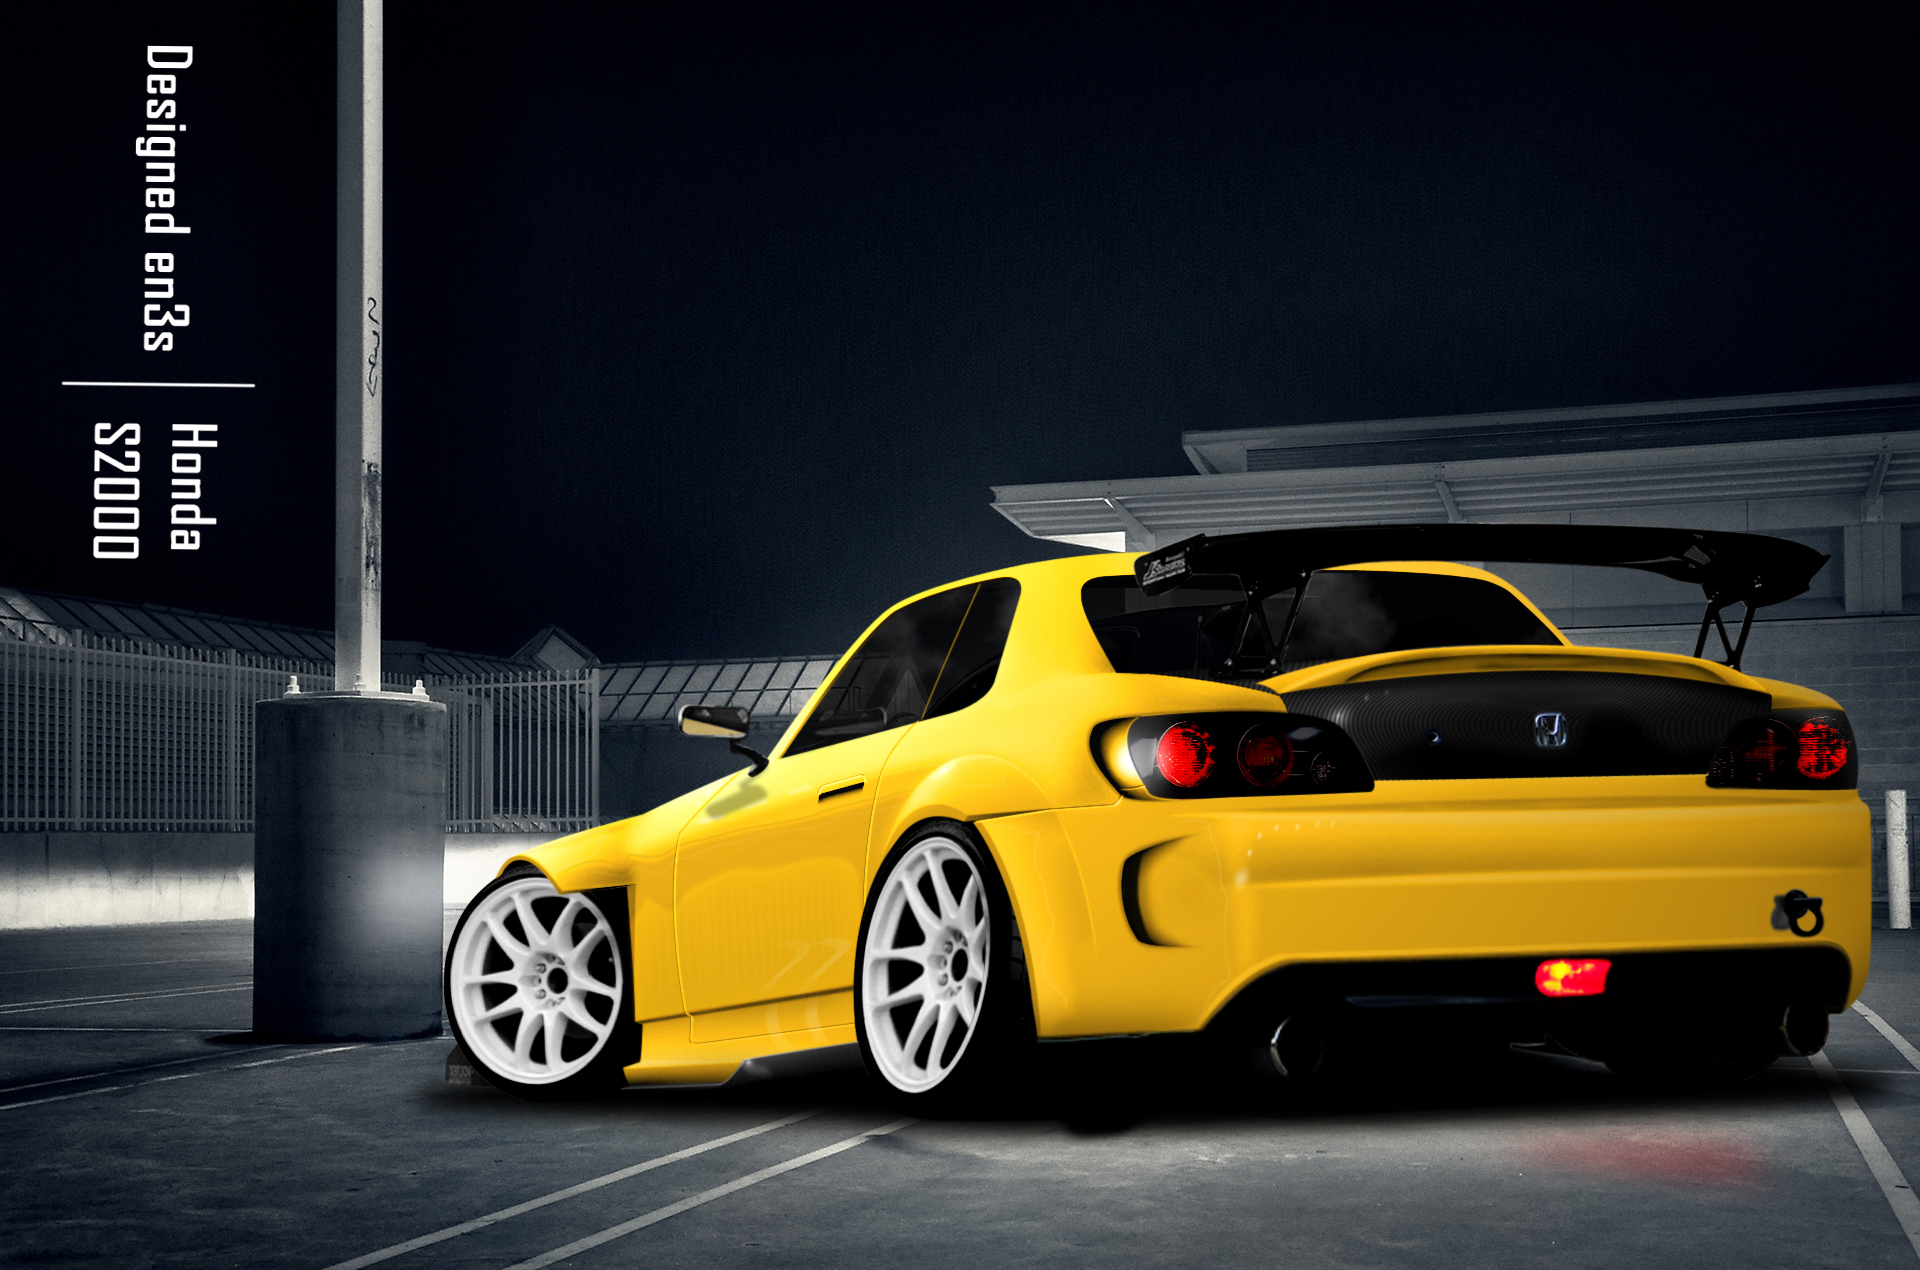 Honda S2000 by en3sDesign